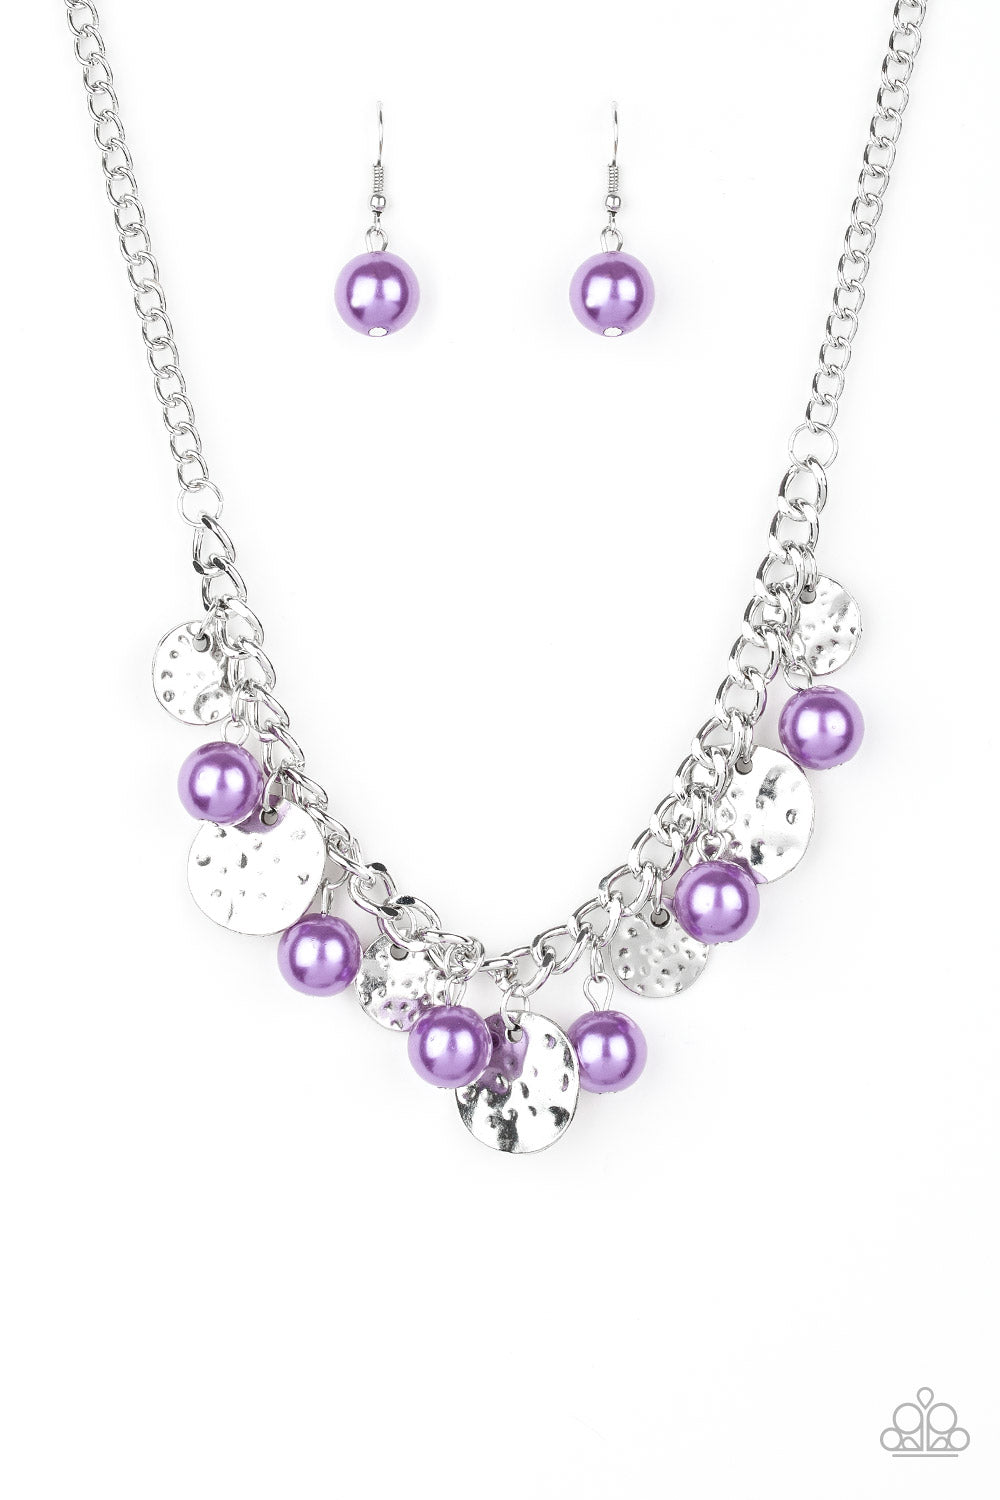 [Buy The Best Selling Affordable Jewelry Online] - SavvyShic